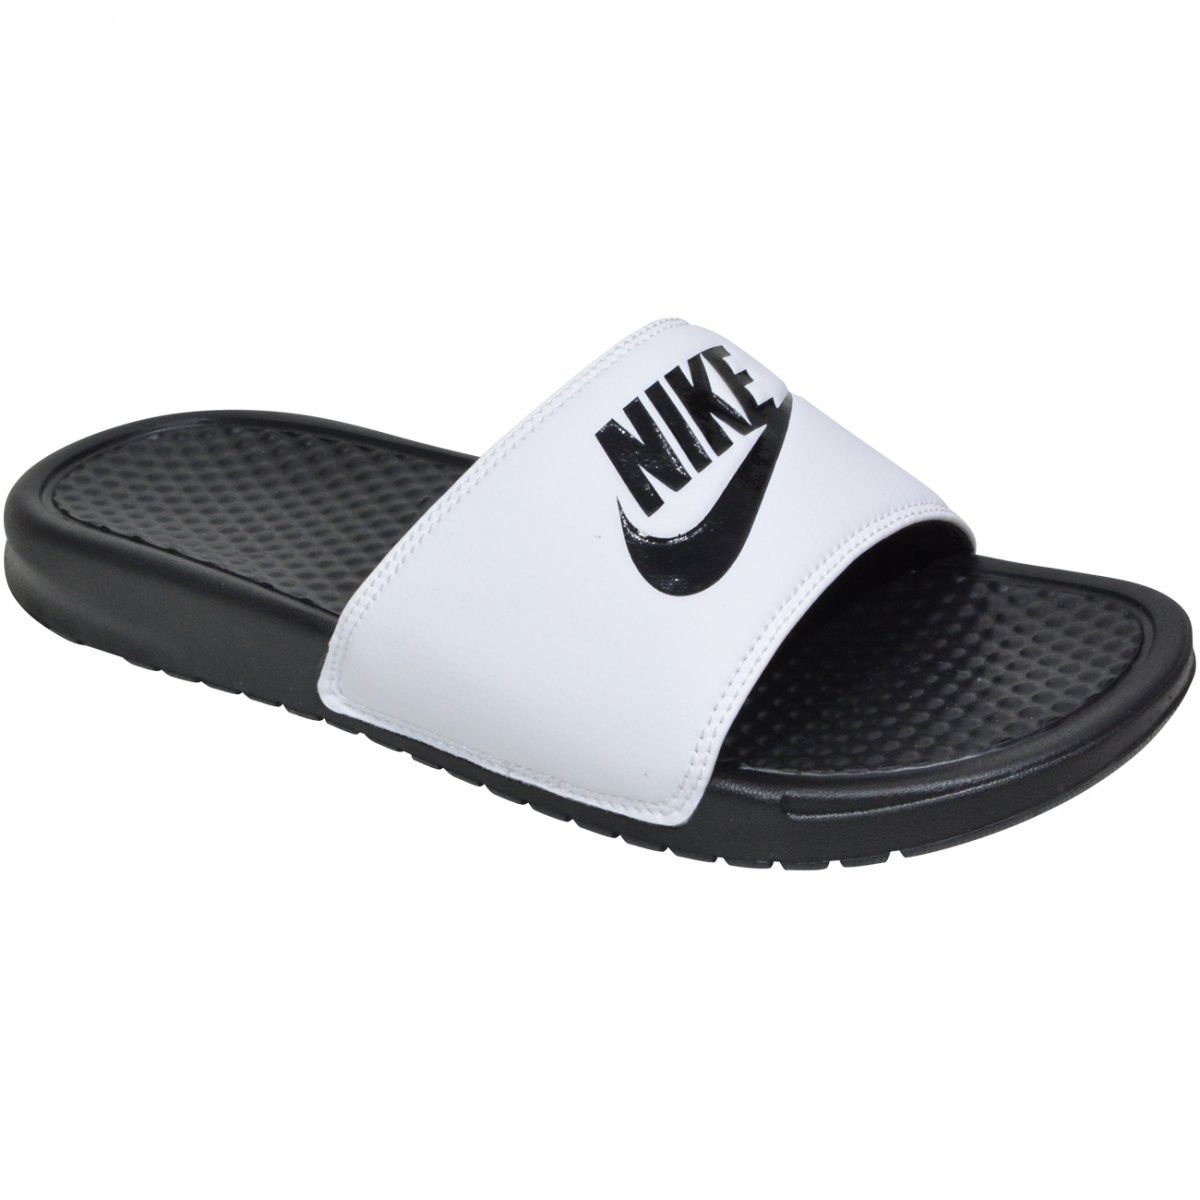 Chinelo Nike Benassi Just Do It - Adulto - Masculino - Preto e Branco